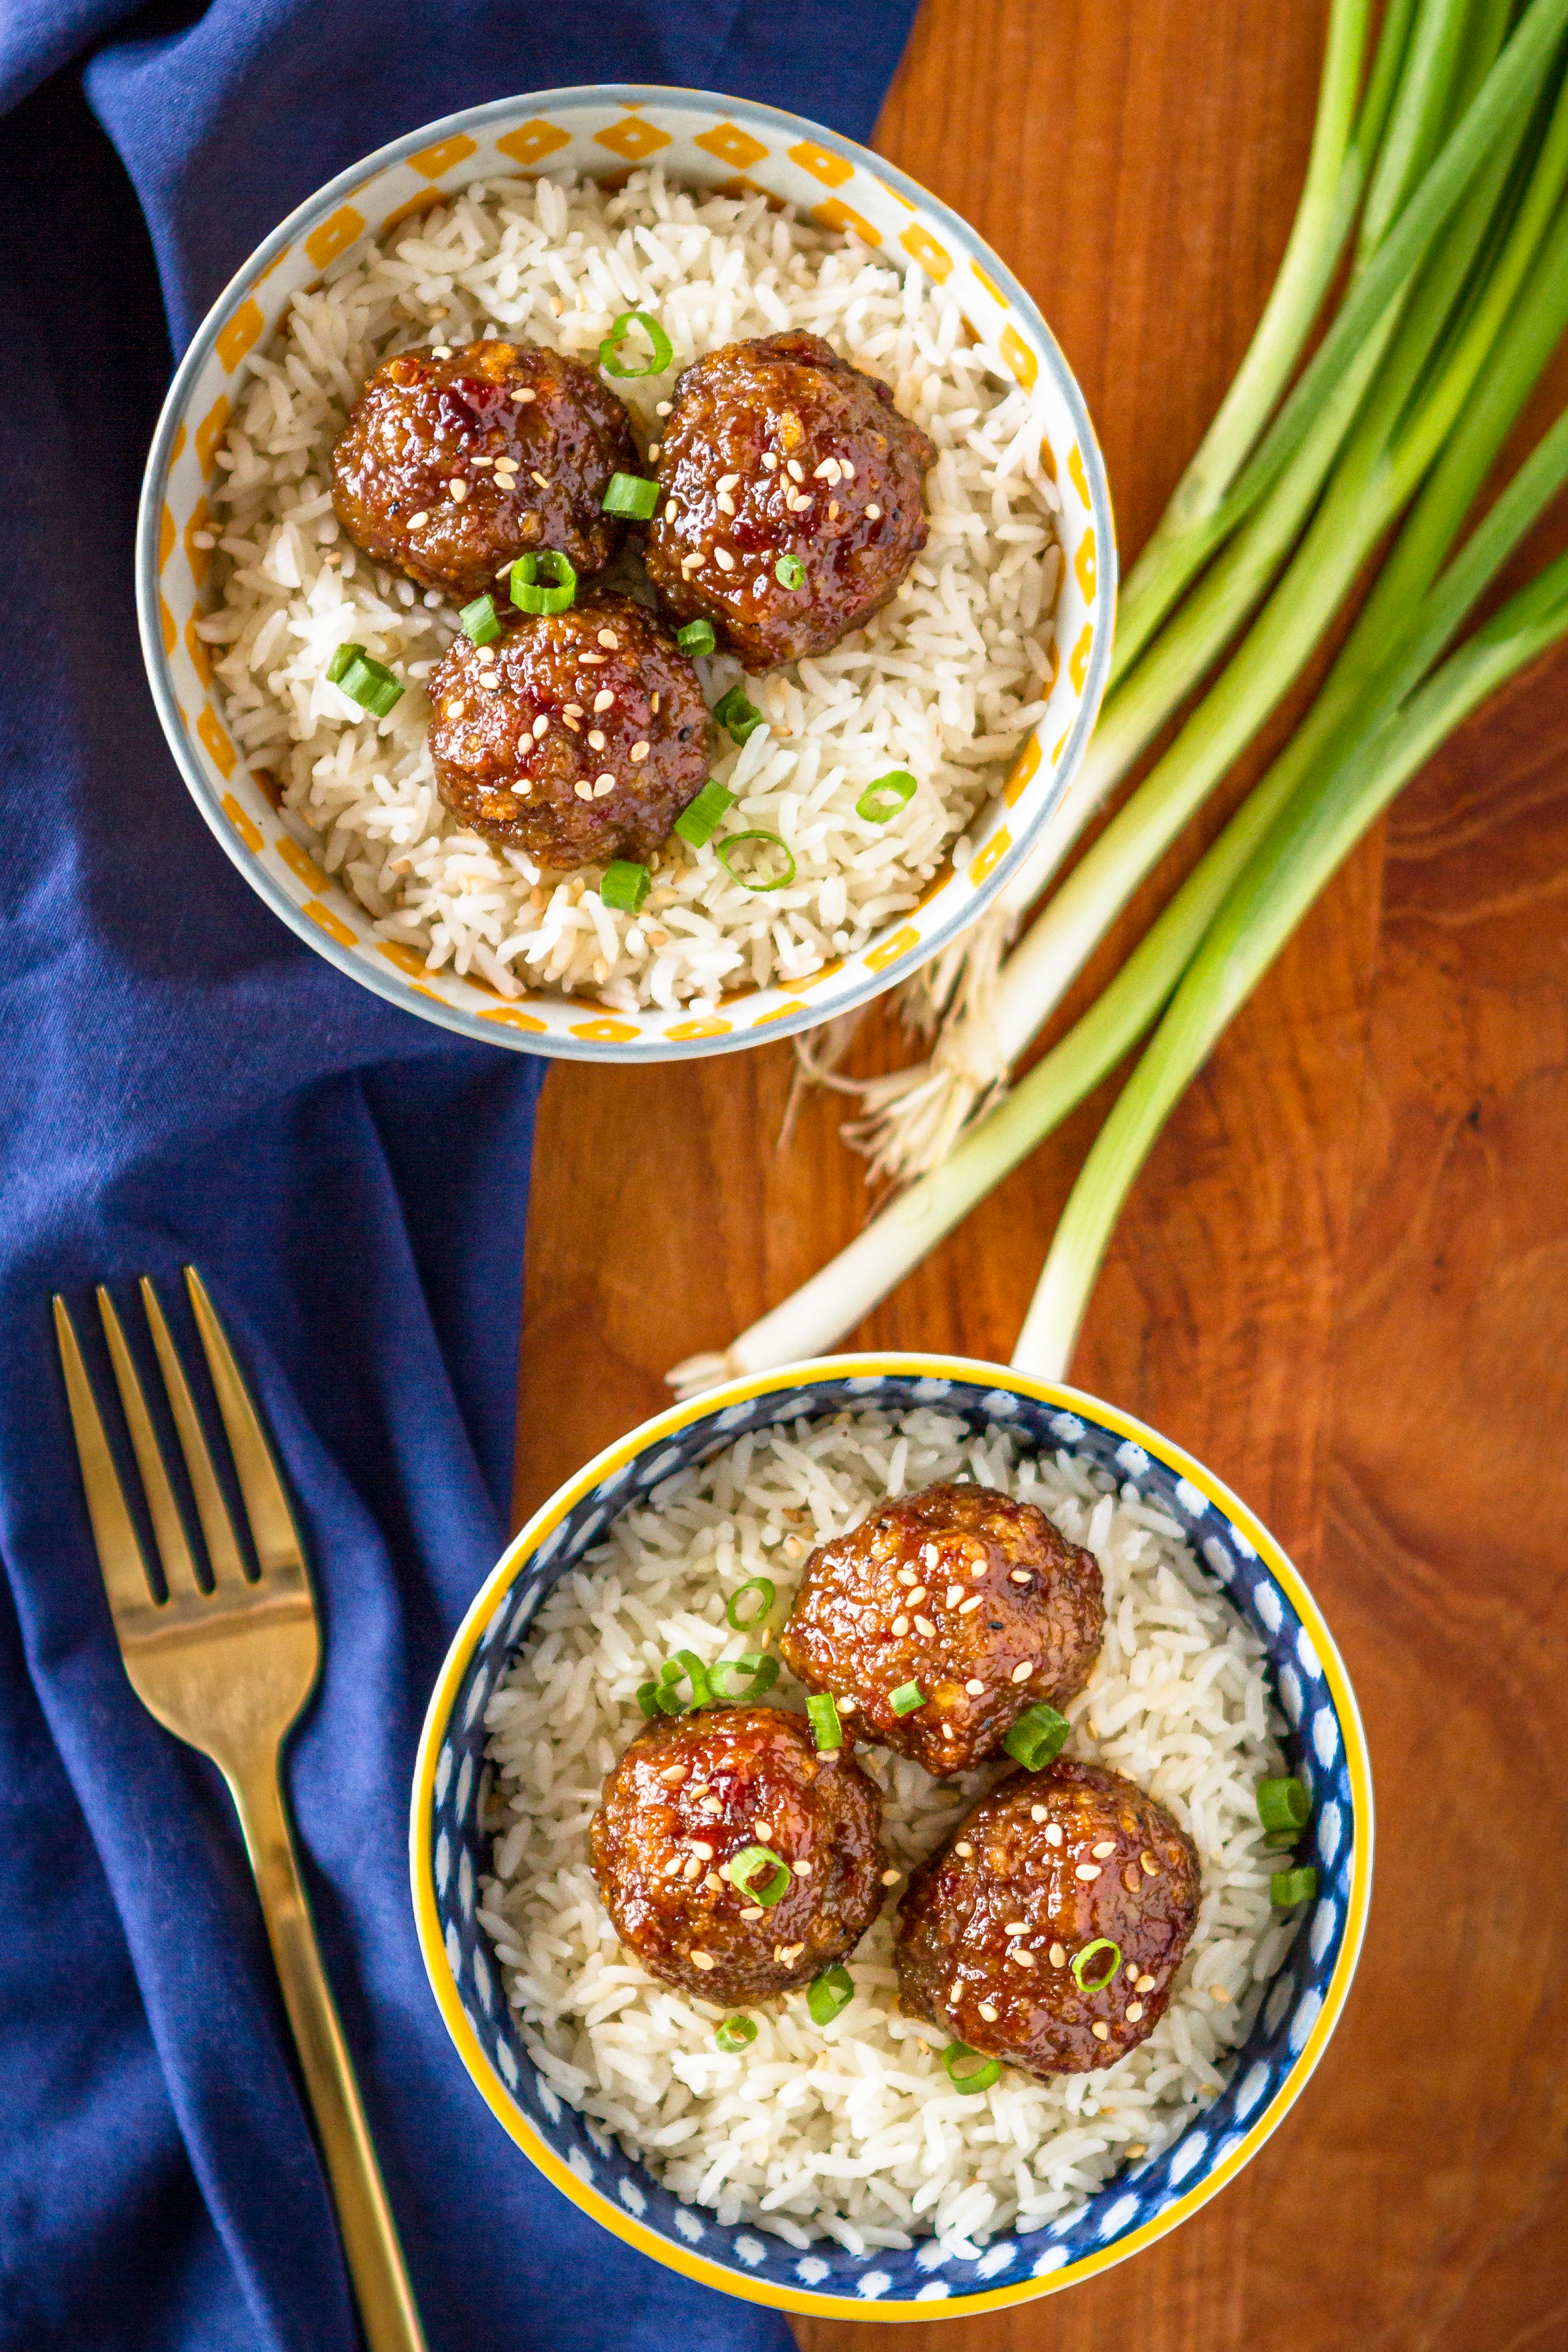 Asian pork meatballs over rice in bowls with green onions and a dark blue napkin